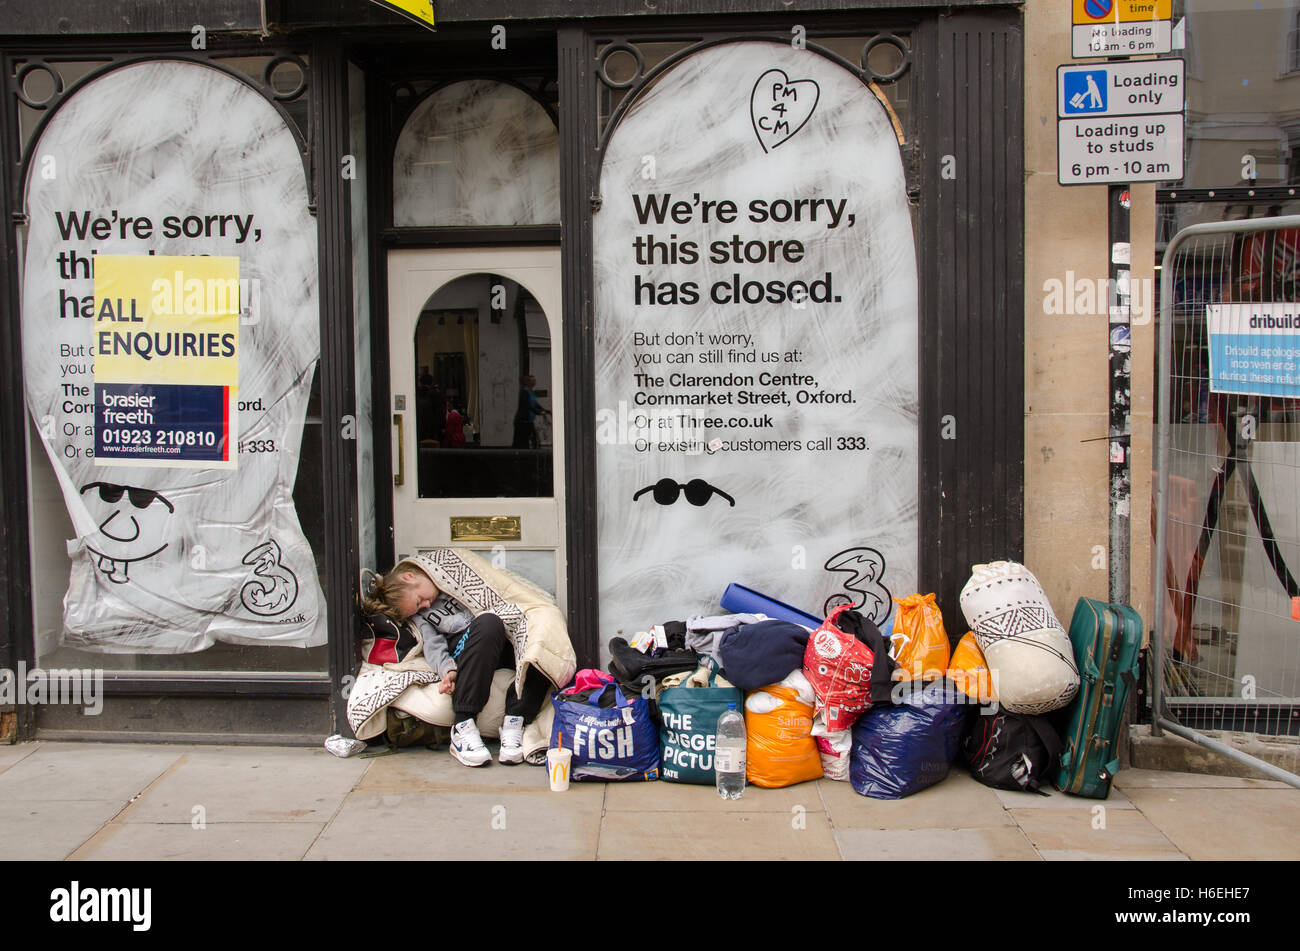 Young homeless woman sleeping outside a closed shop in Cornmarket street, Oxford city center - Stock Image